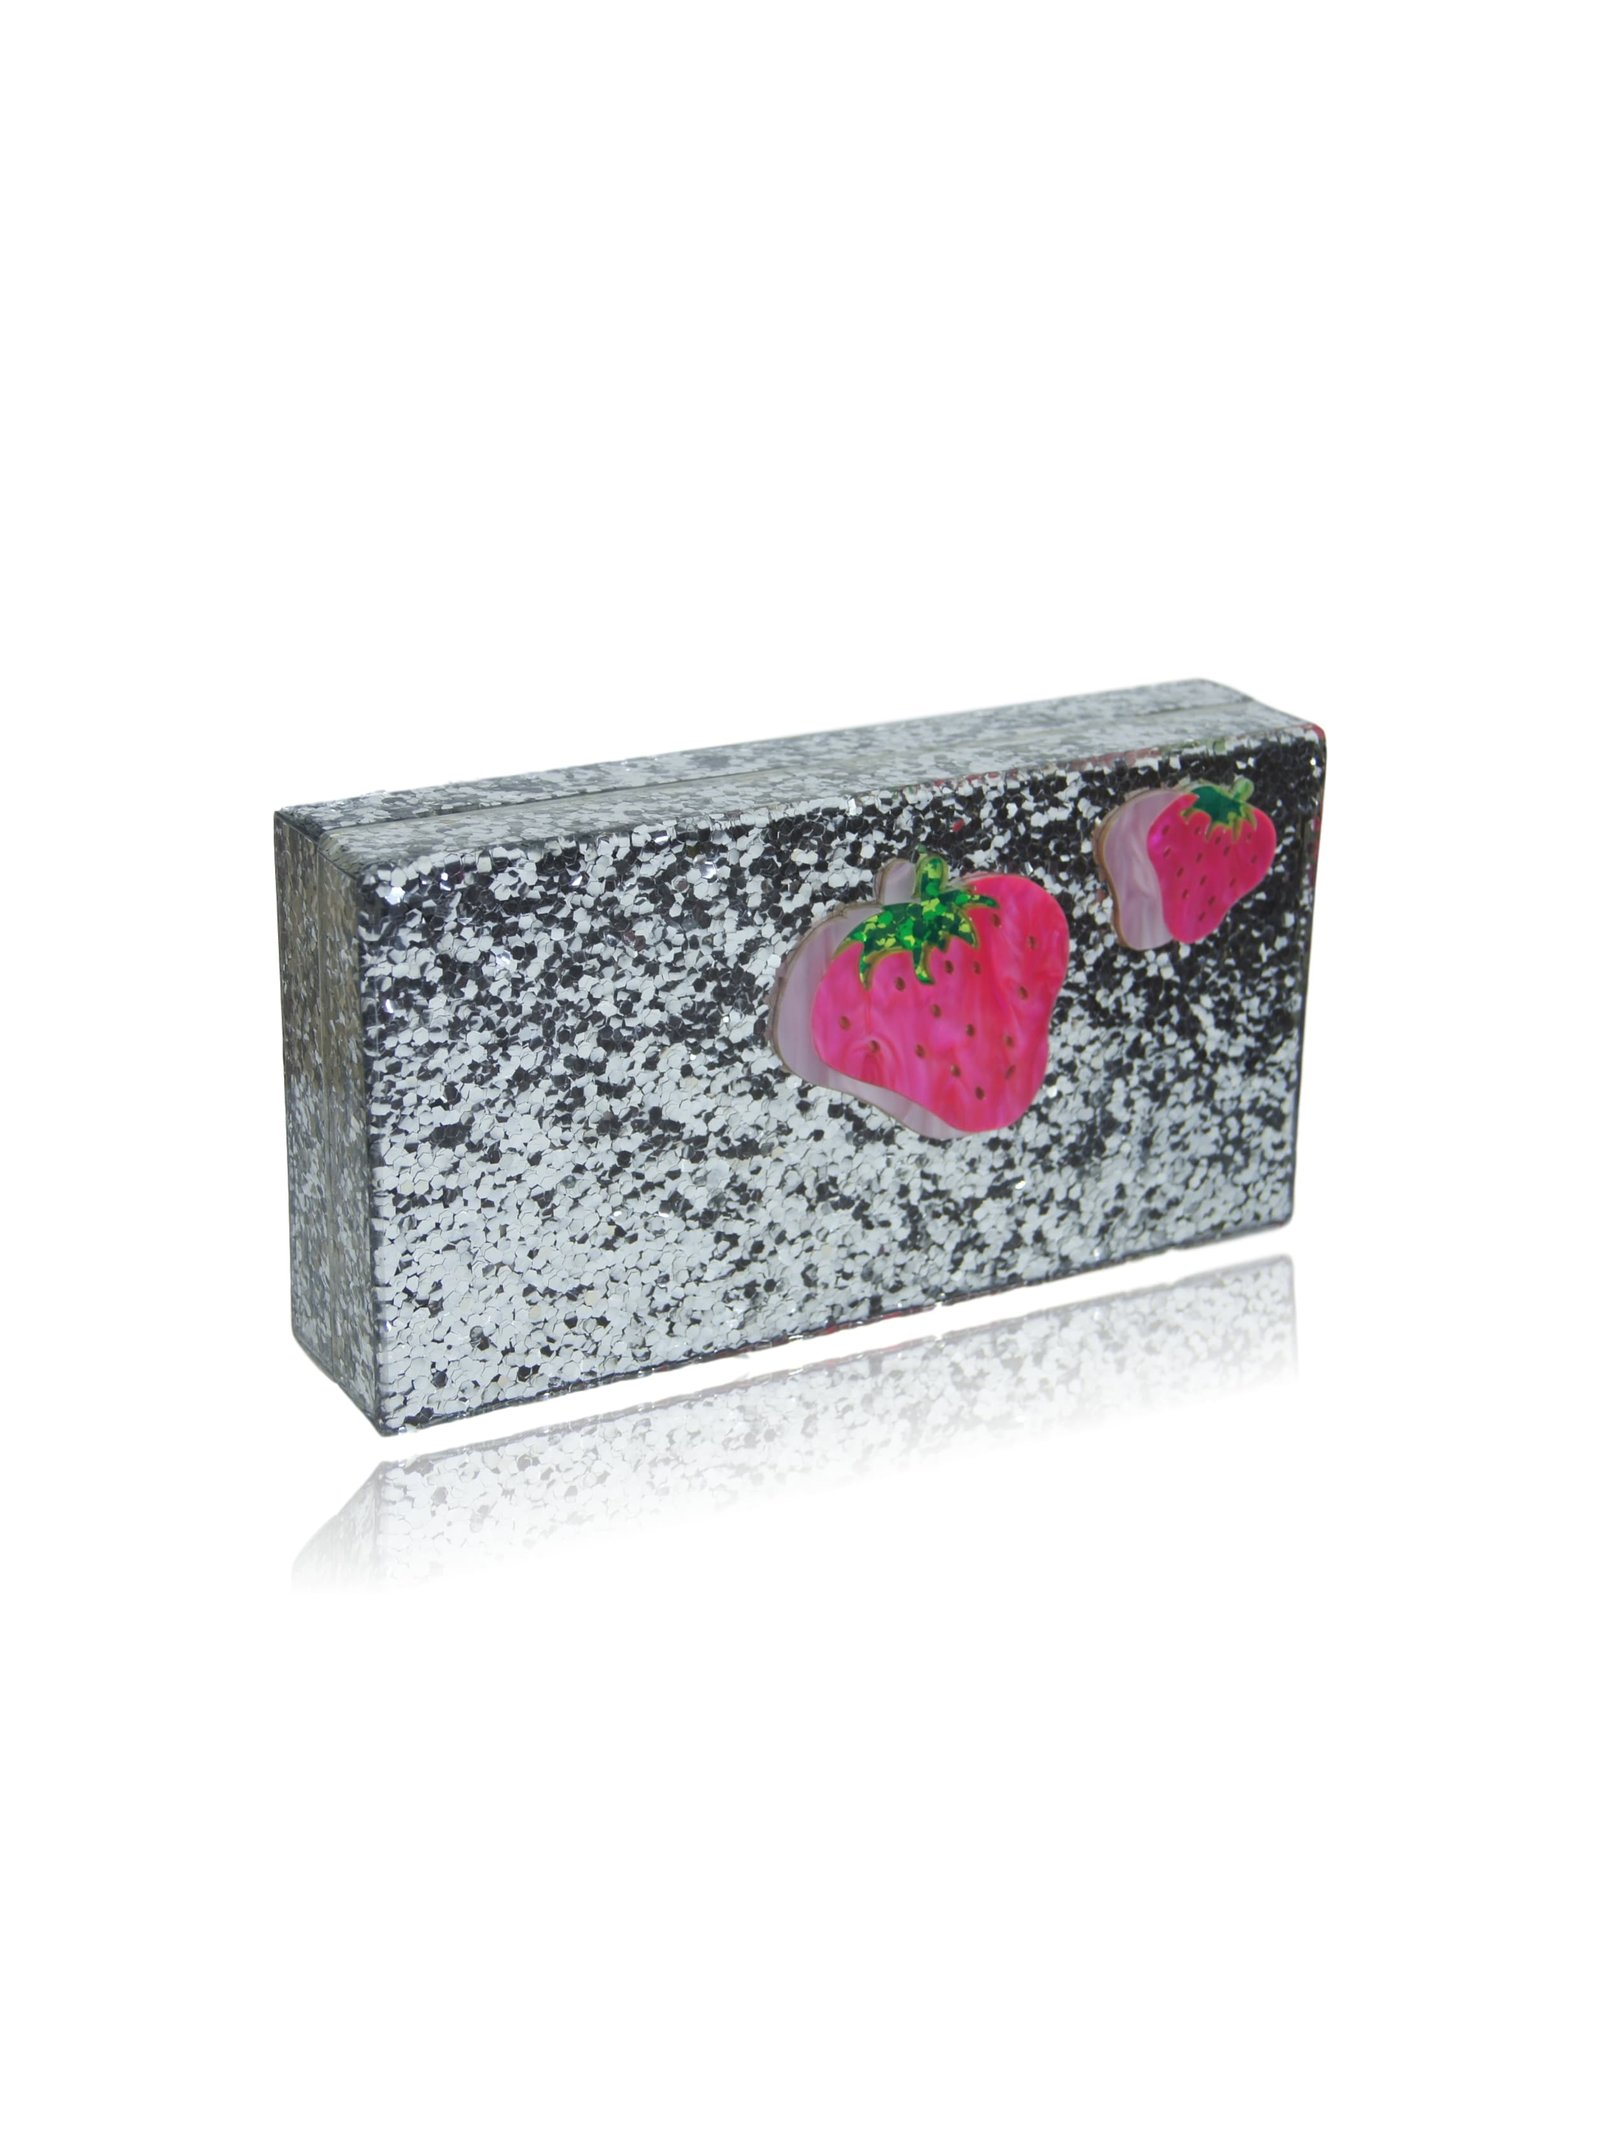 Milanblocks Strawberry Silver Glitter Box Clutch